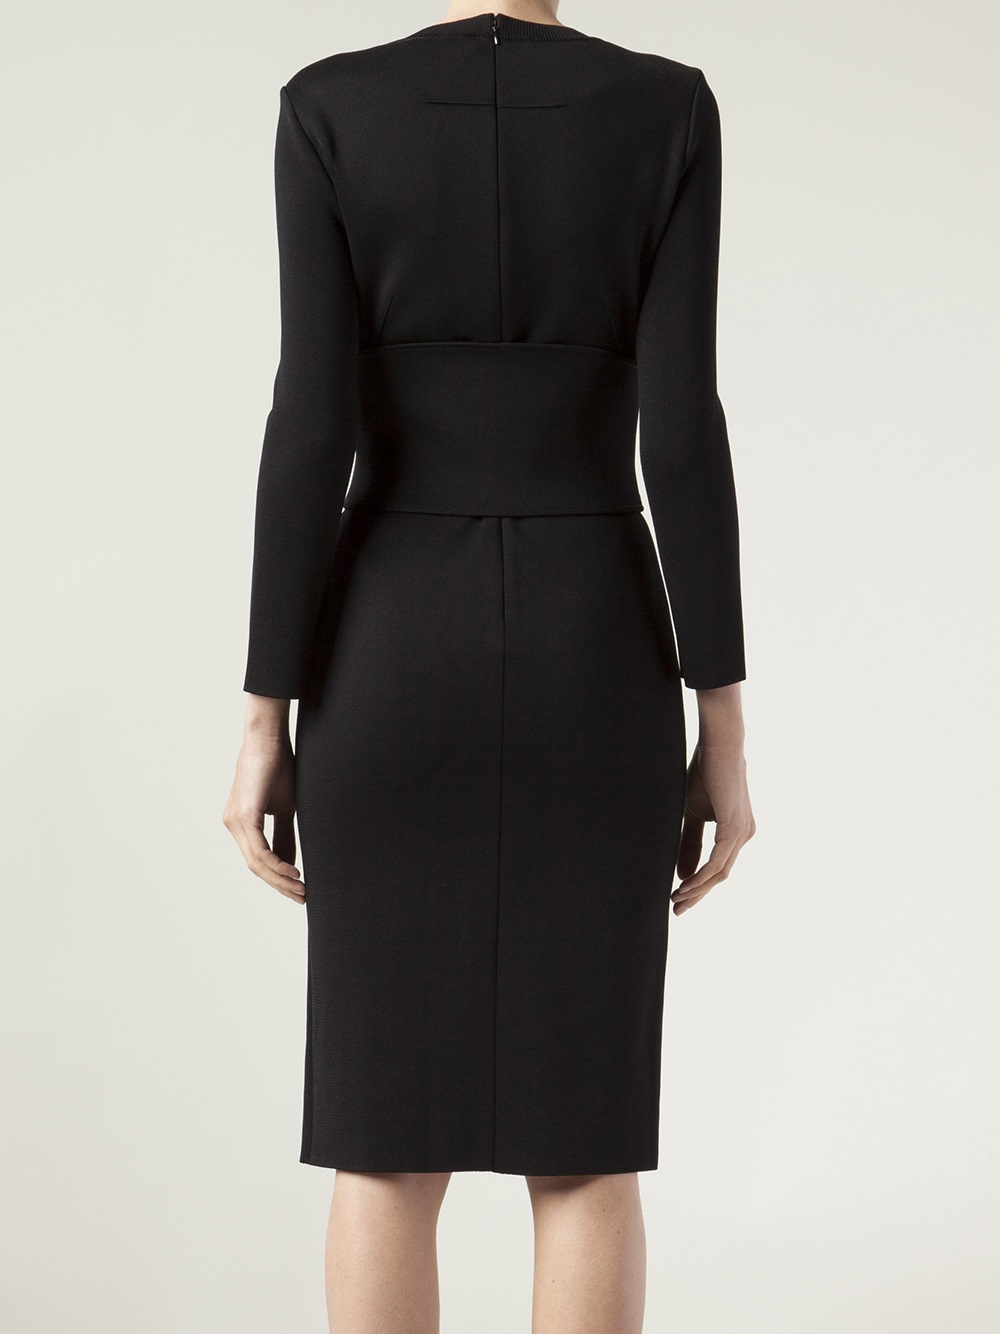 Givenchy Belted Robe Dress In Black Lyst